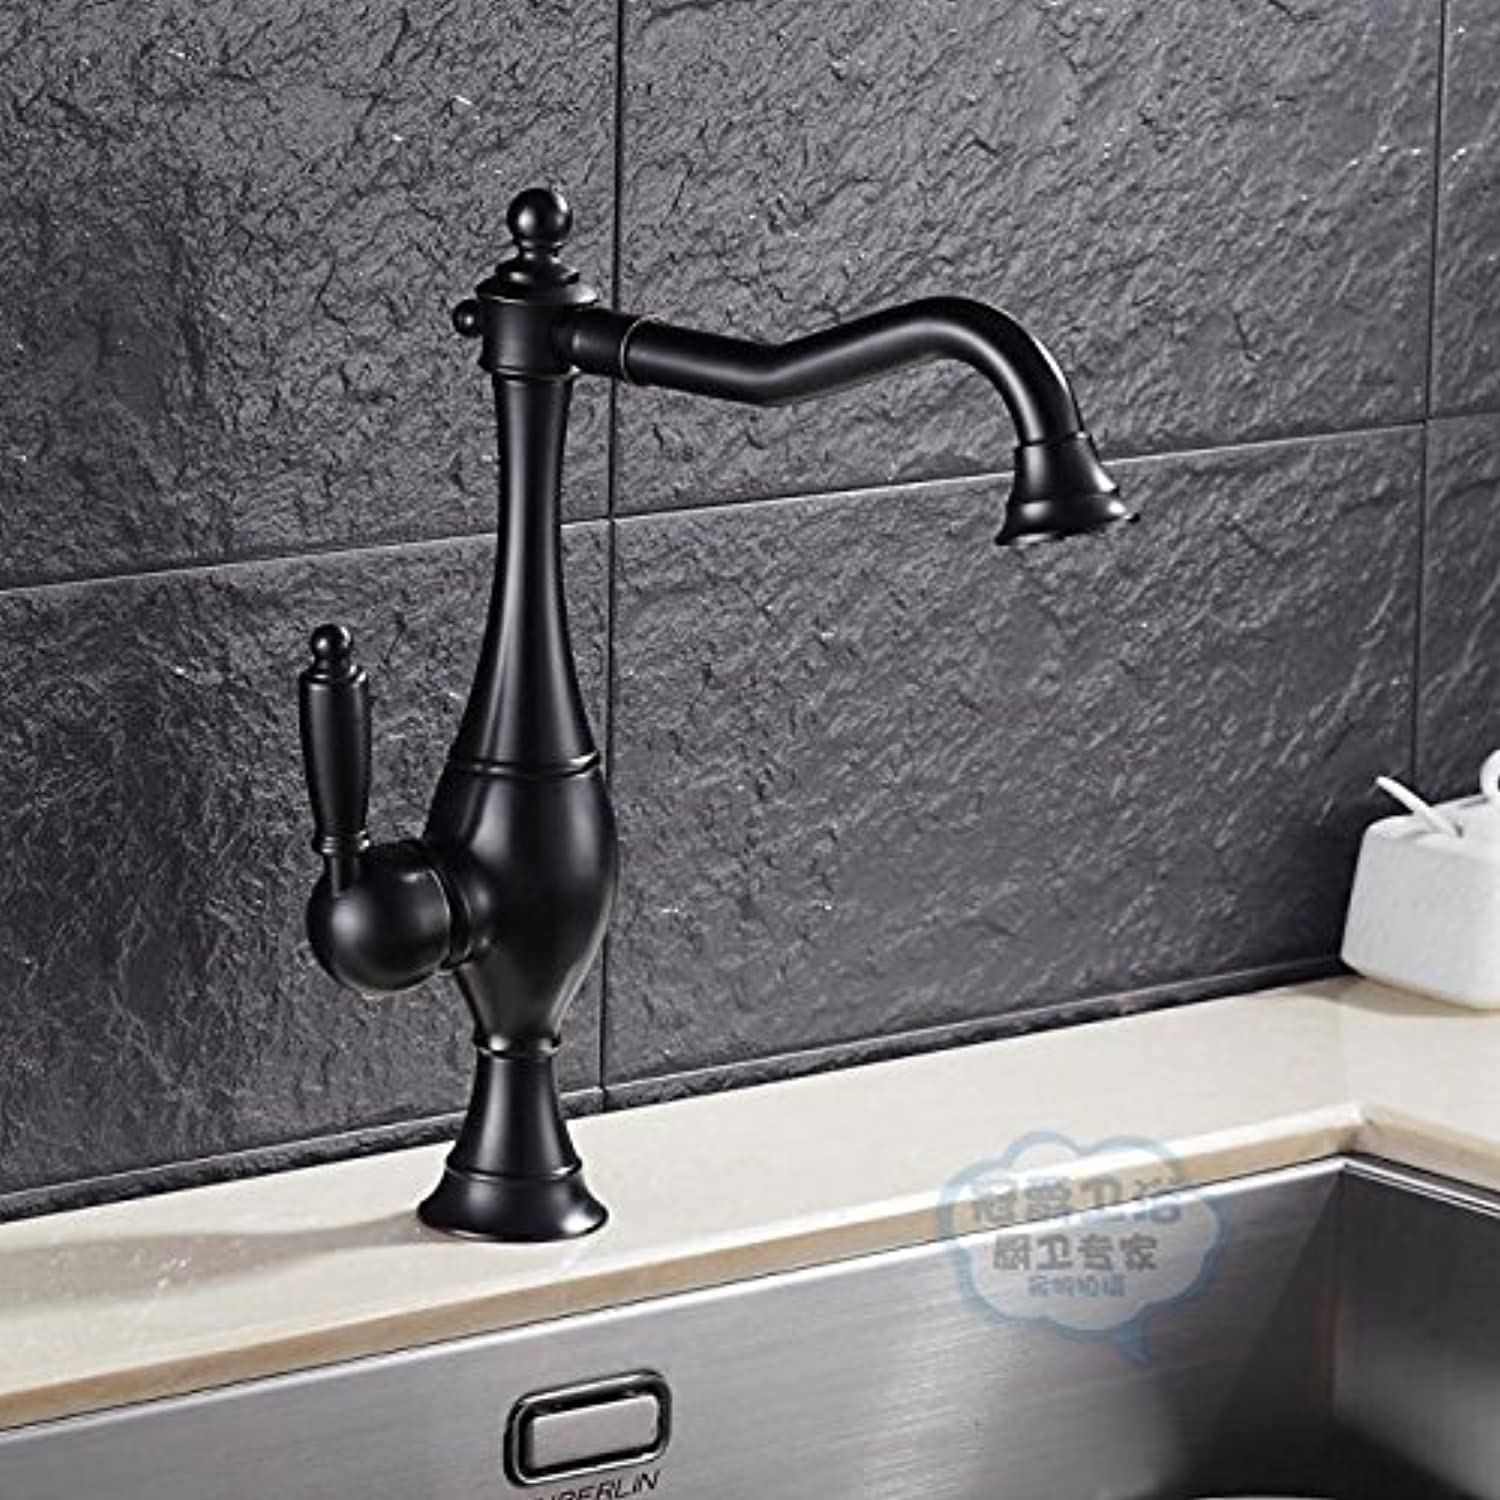 Fbict All Copper Black European Antique Retro hot and Cold Water Single Handle redating wash Basin Basin wash Basin Faucet for Kitchen Bathroom Faucet Bid Tap